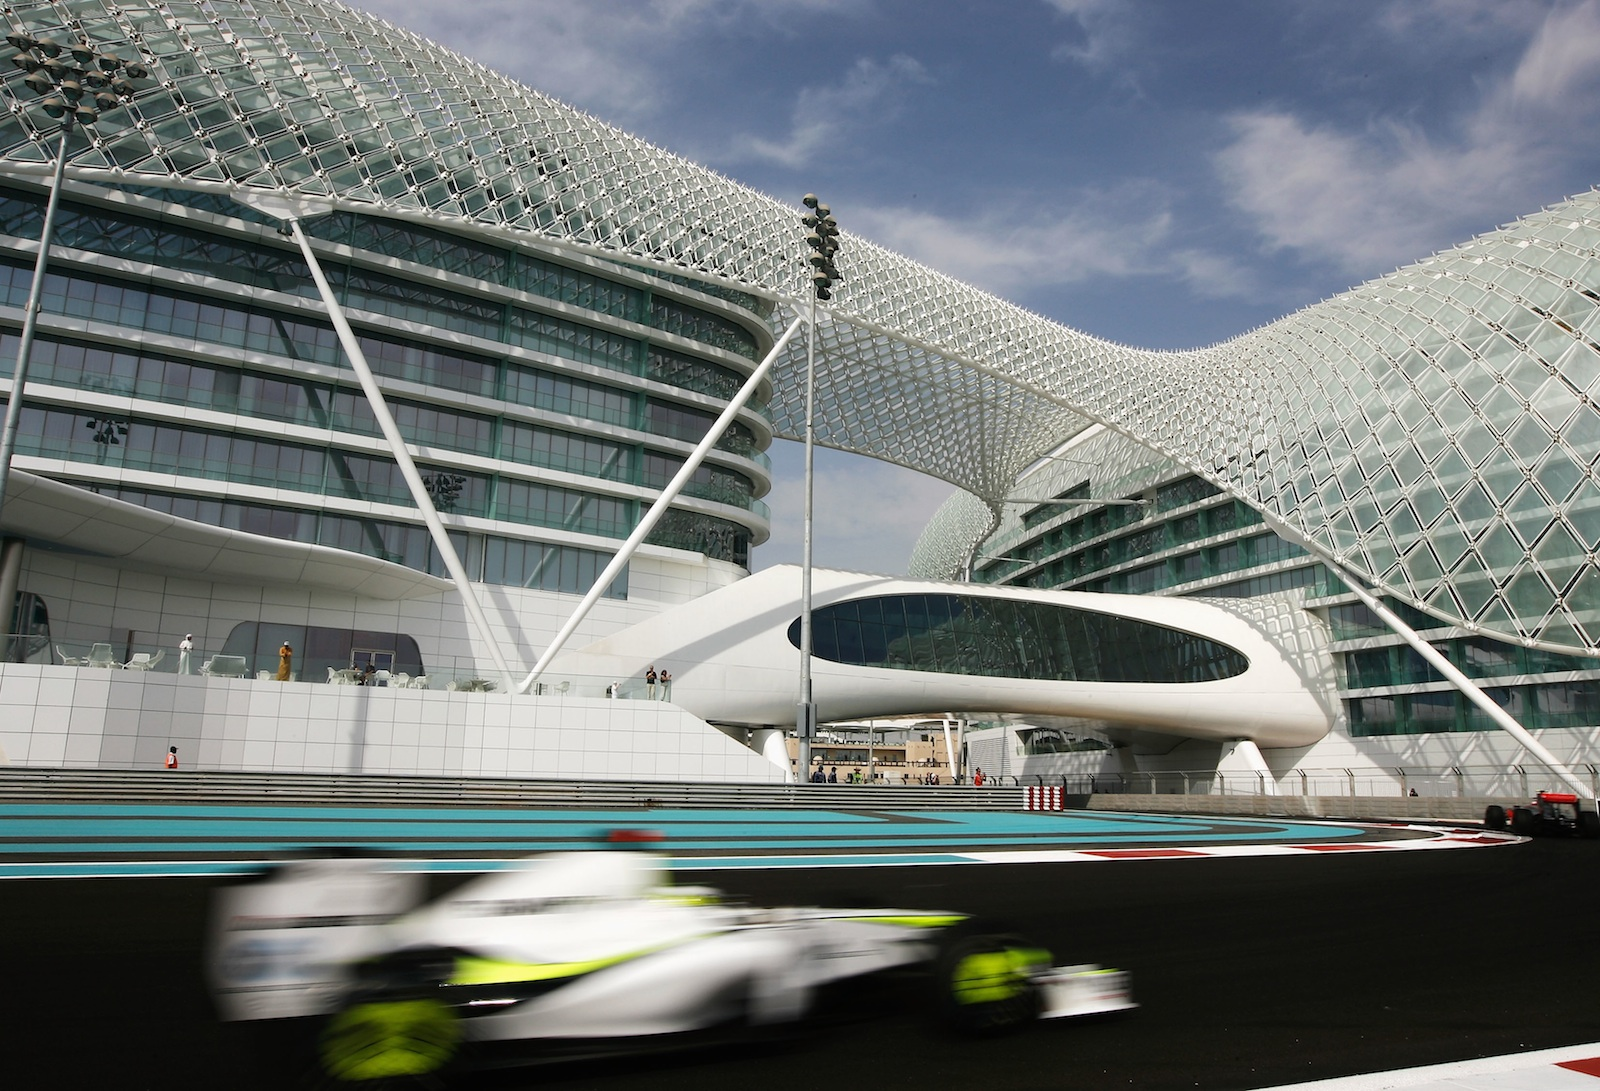 racing car in Amazing Construction Built Over F1 Racing Track-Yas Viceroy Abu Dhabi Hotel by Asymptote Architecture Homesthetics